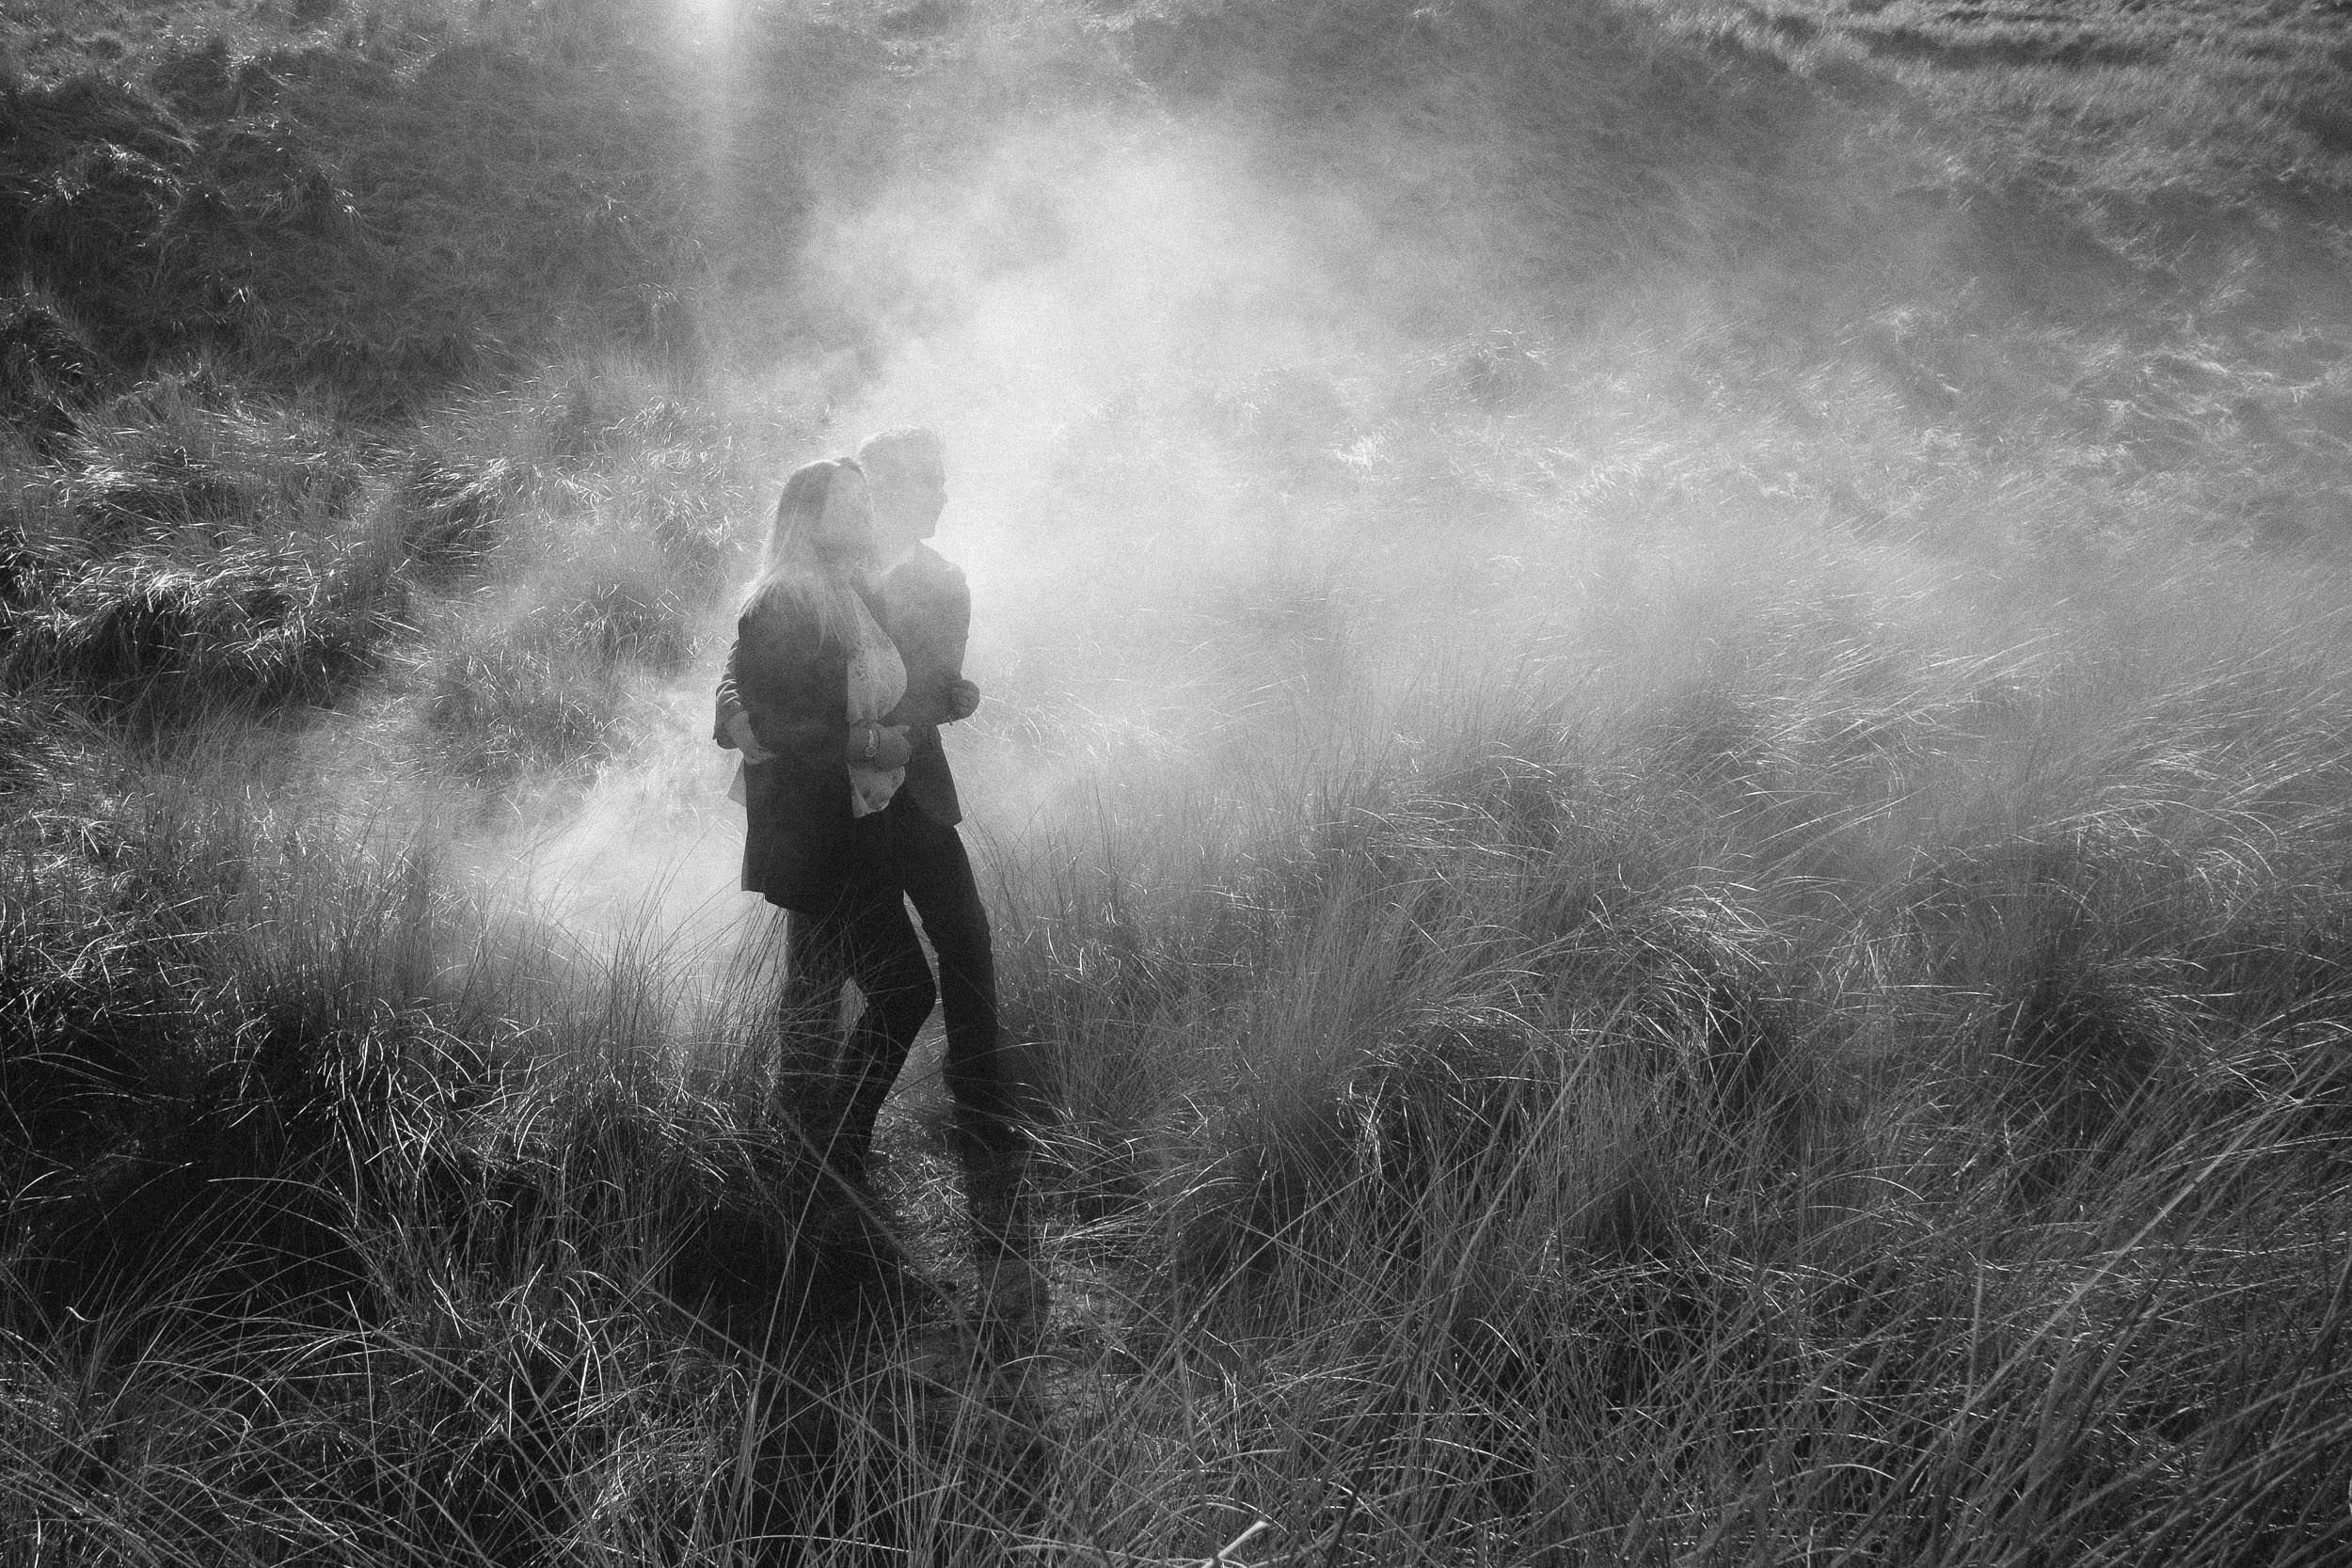 Couple enveloped in smoke in a dreamy black at white photo amongst sand dunes